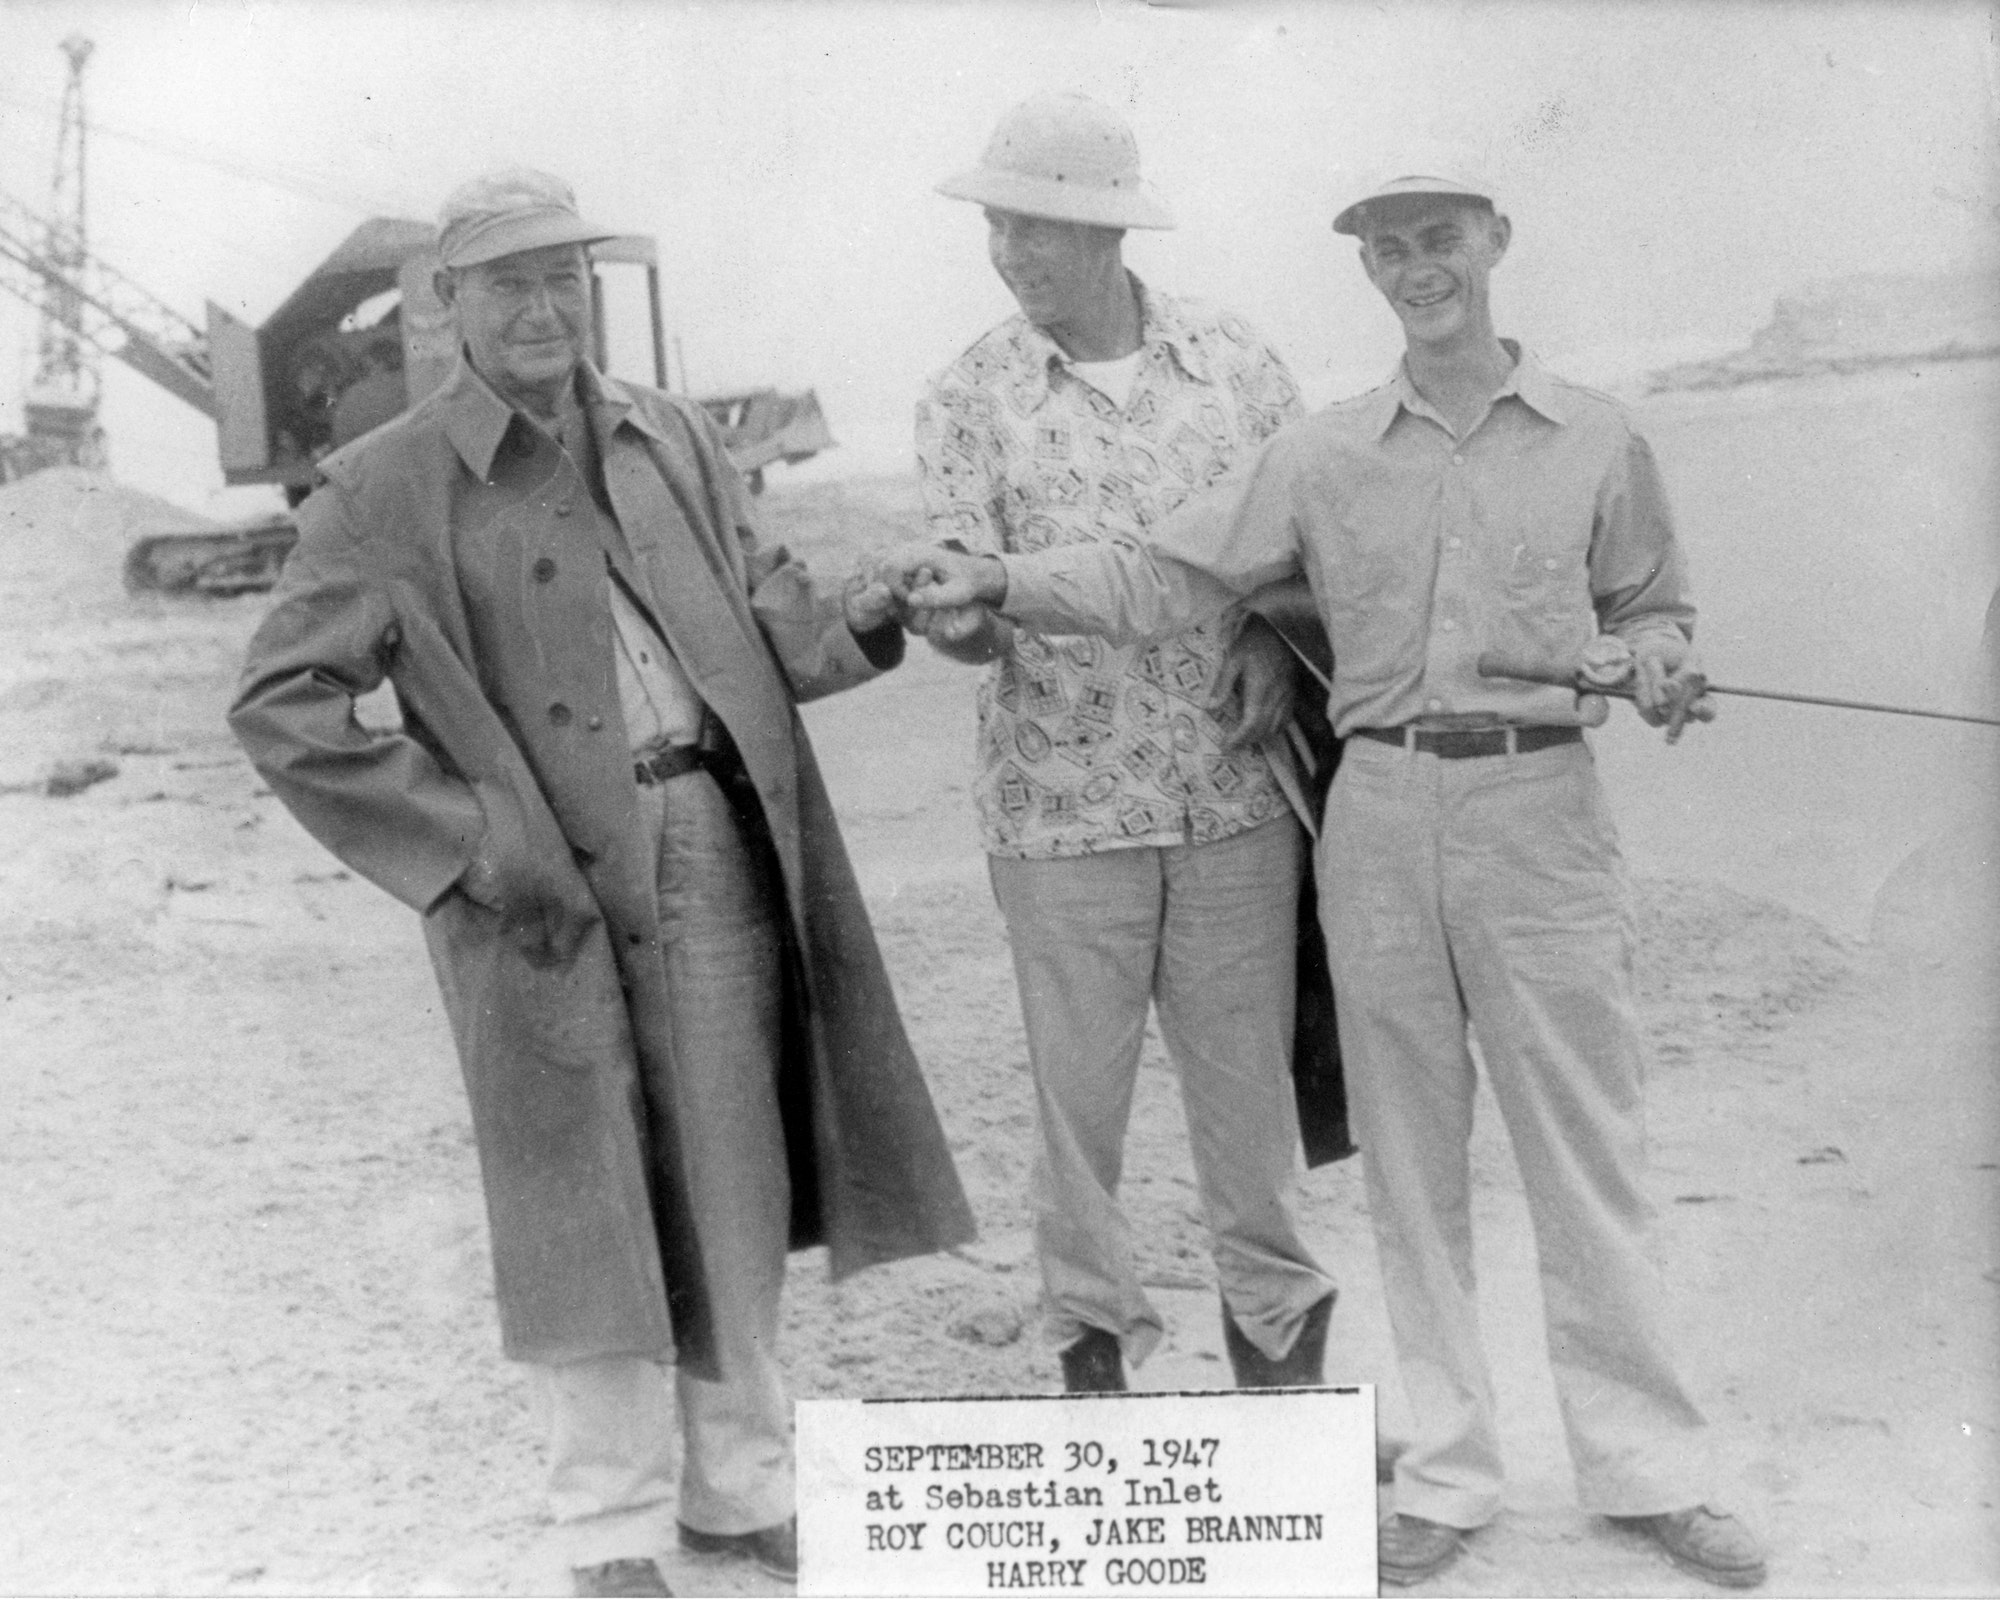 Three men standing together with an excavator in the background from 1947